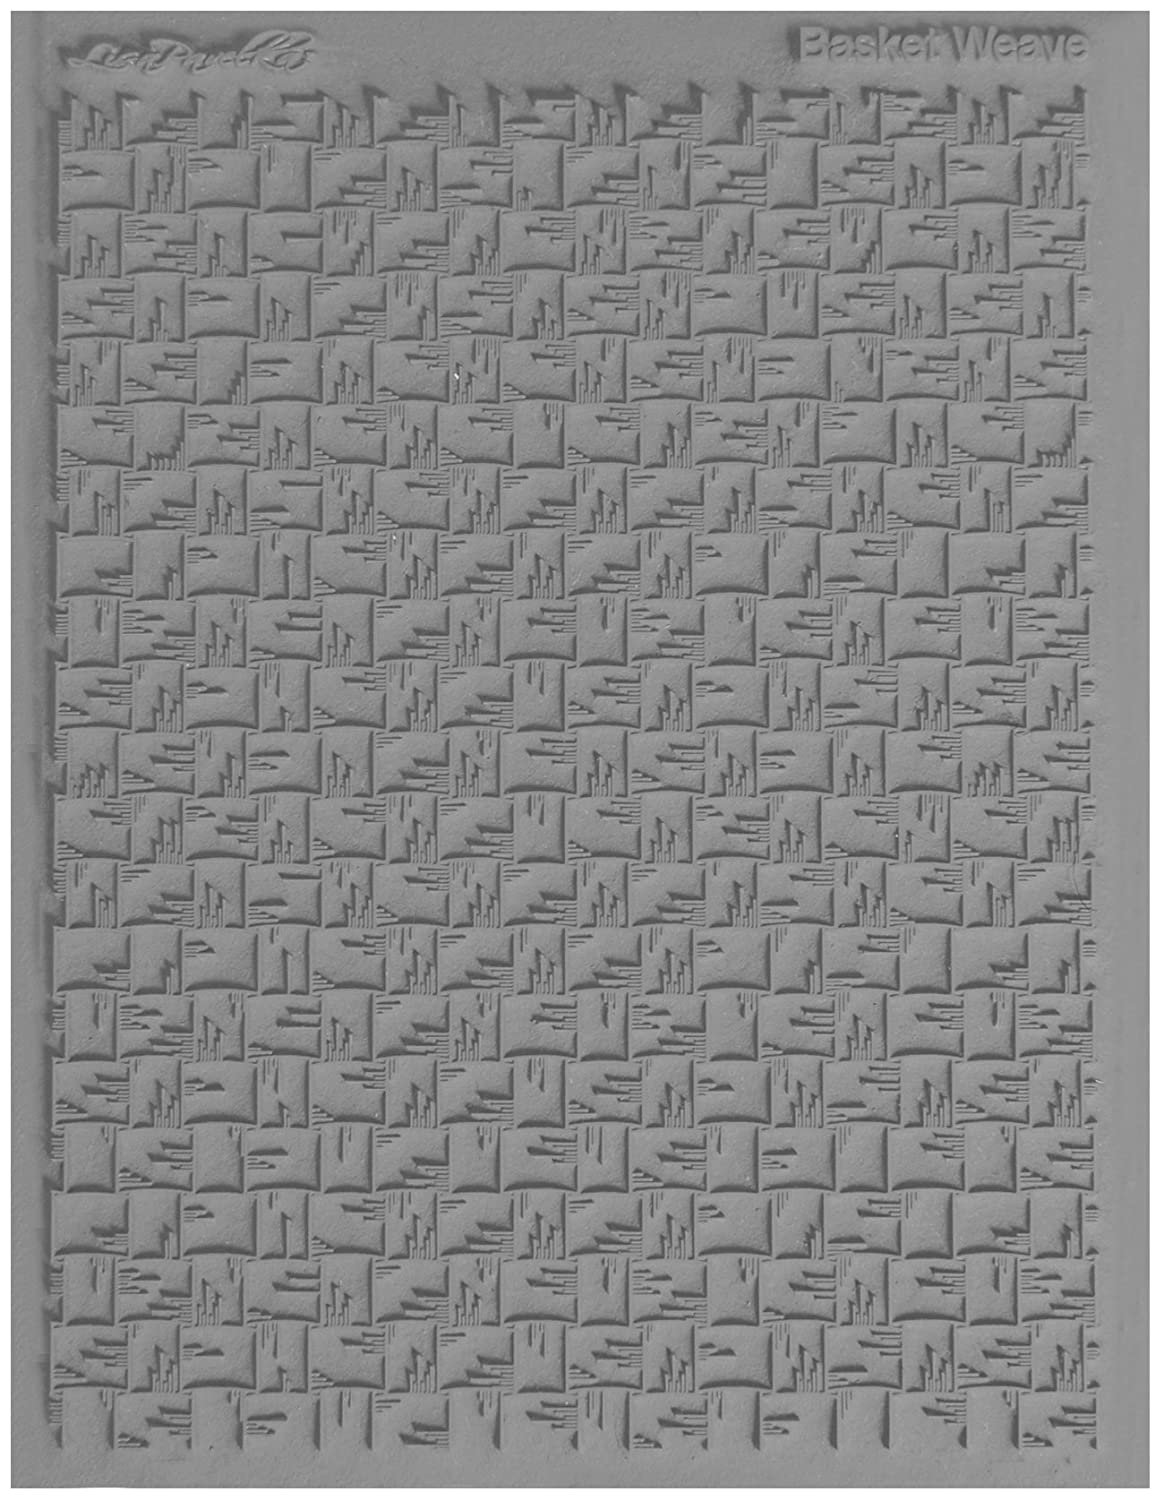 JHB International Inc Lisa Pavelka 527095 Texture Stamp Basketweave